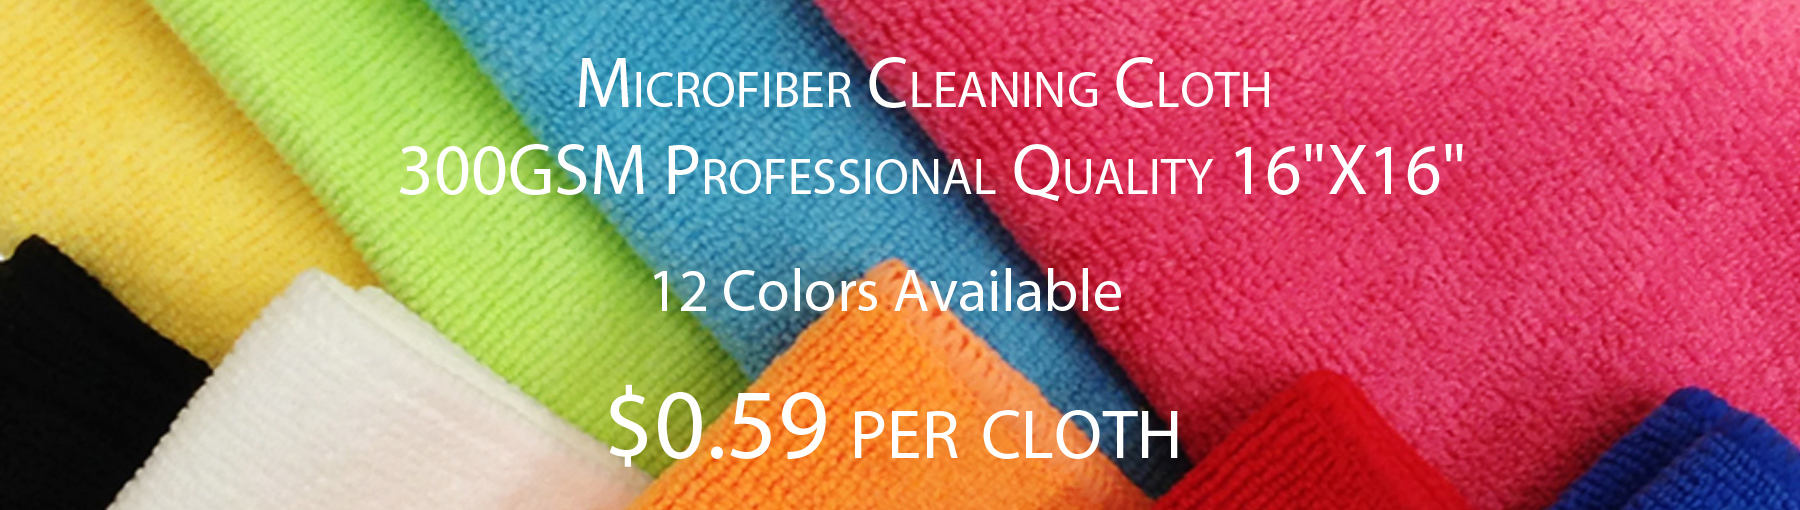 Microfiber Cleaning Cloth 0.59 per Cloth